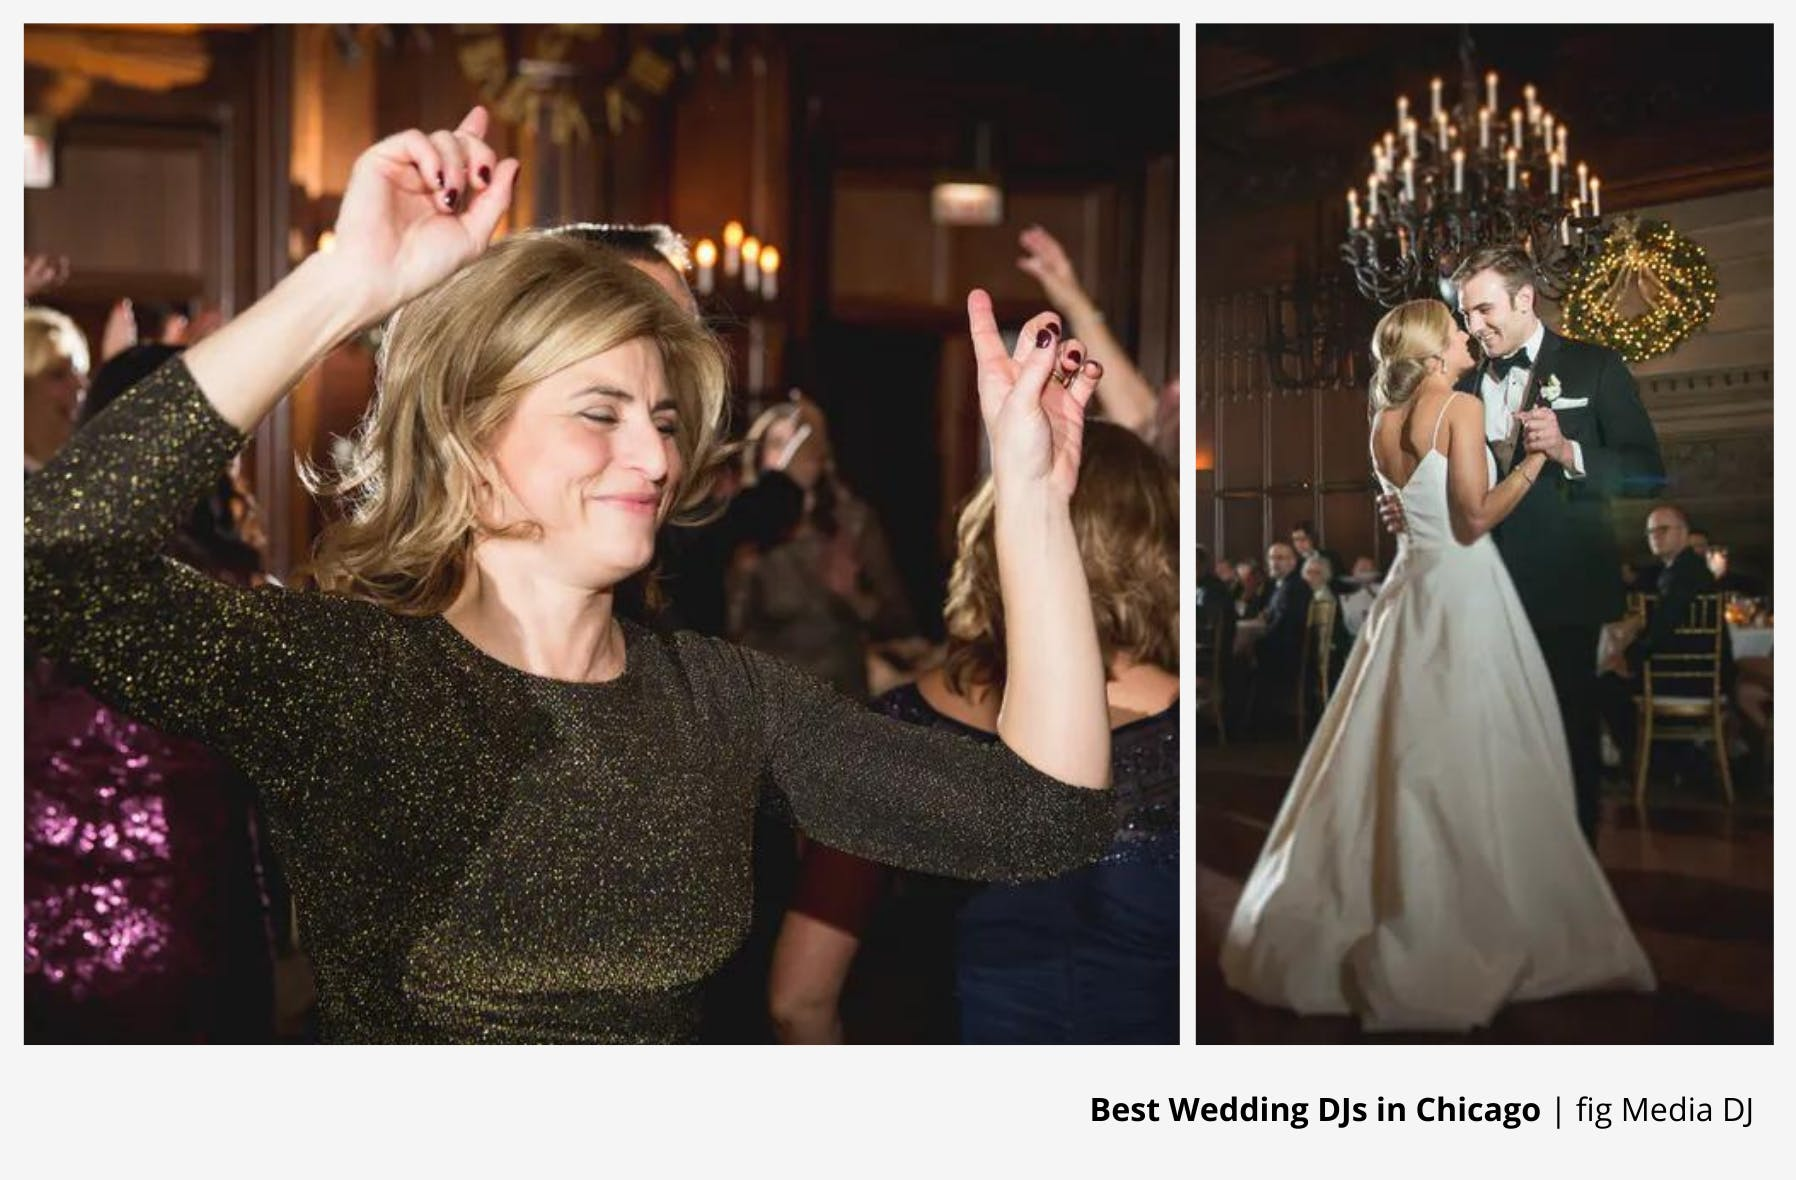 woman dancing with hands in air and a couple dancing their first dance to wedding dj entertainment | PartySlate